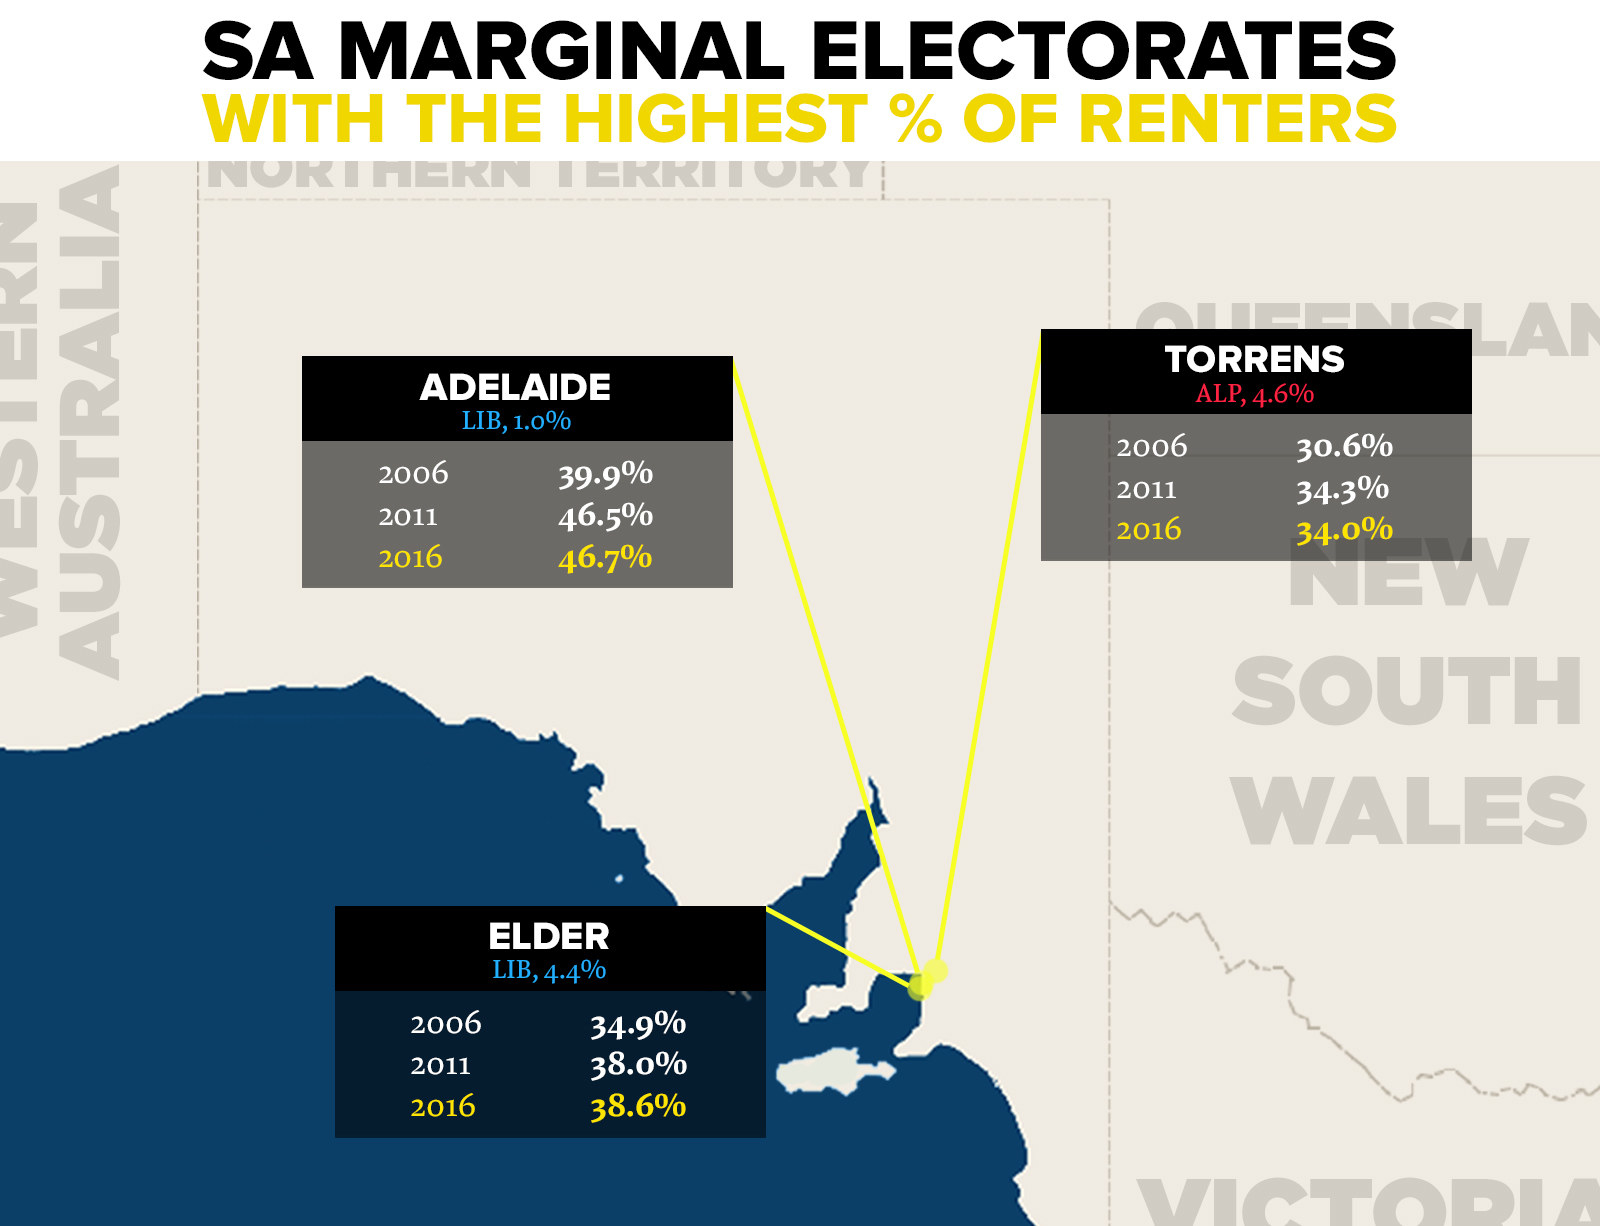 SA has below average renting numbers, with 28.5% of its households reporting as rentals in 2016. But the numbers in marginal seats are generally increasing: 5 out of 7 marginal electorates for which there are data (three others were created in 2016) saw an increase in numbers between 2011 and 2016, and all increased between 2006 and 2016. The strongest concentrations are in the Adelaide seats of Adelaide (46.7%), Elder (38.6%) and Torrens (34.0%).